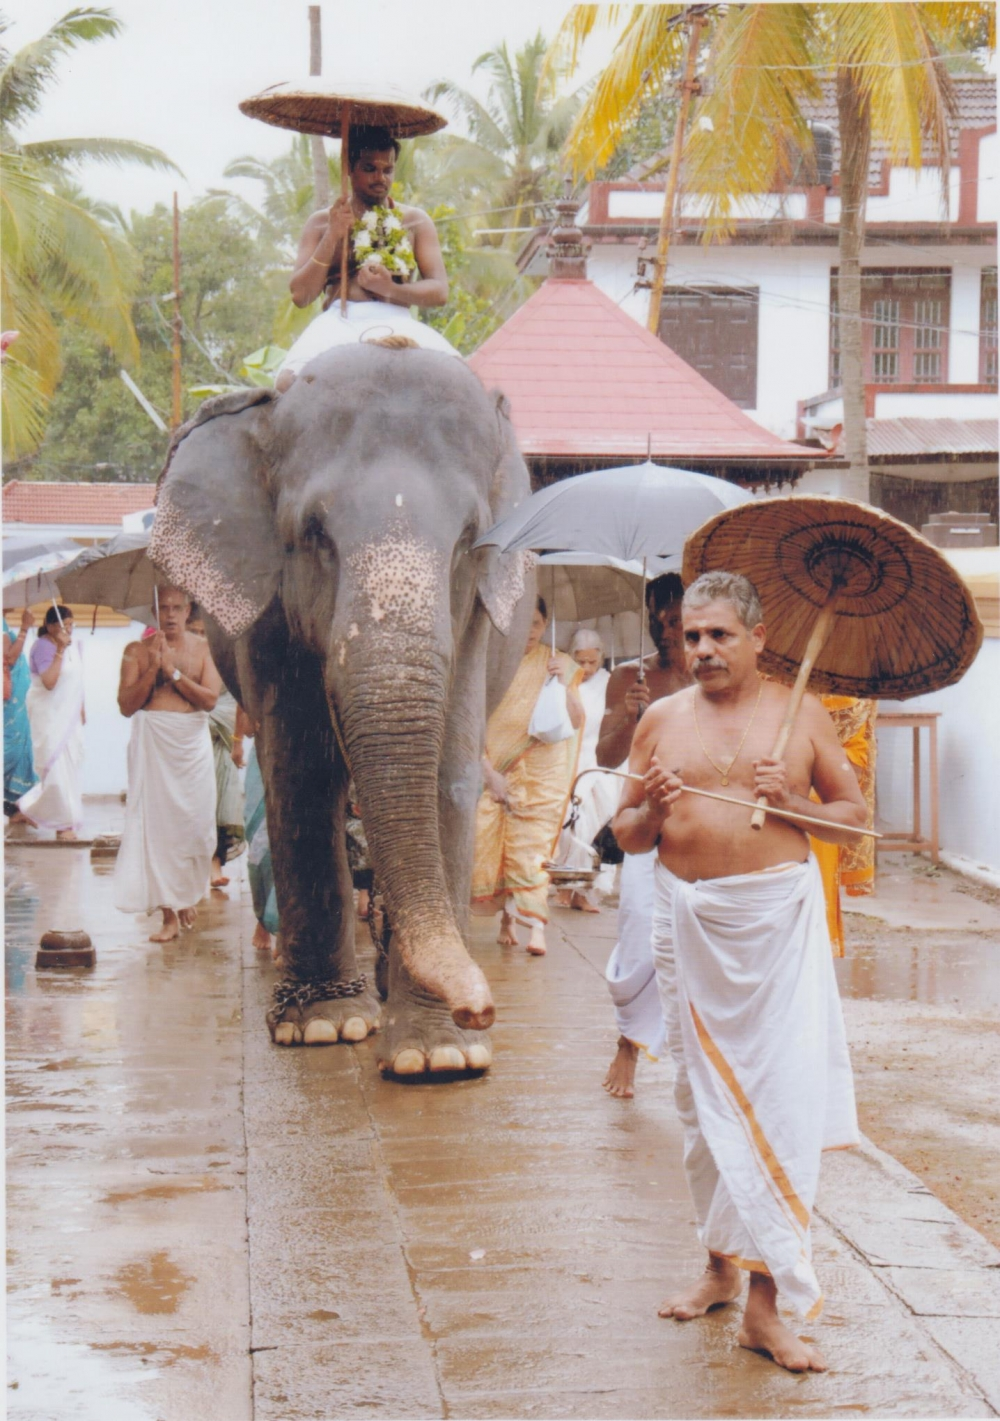 Elephant is used for Seeveli, a daily temple ritual